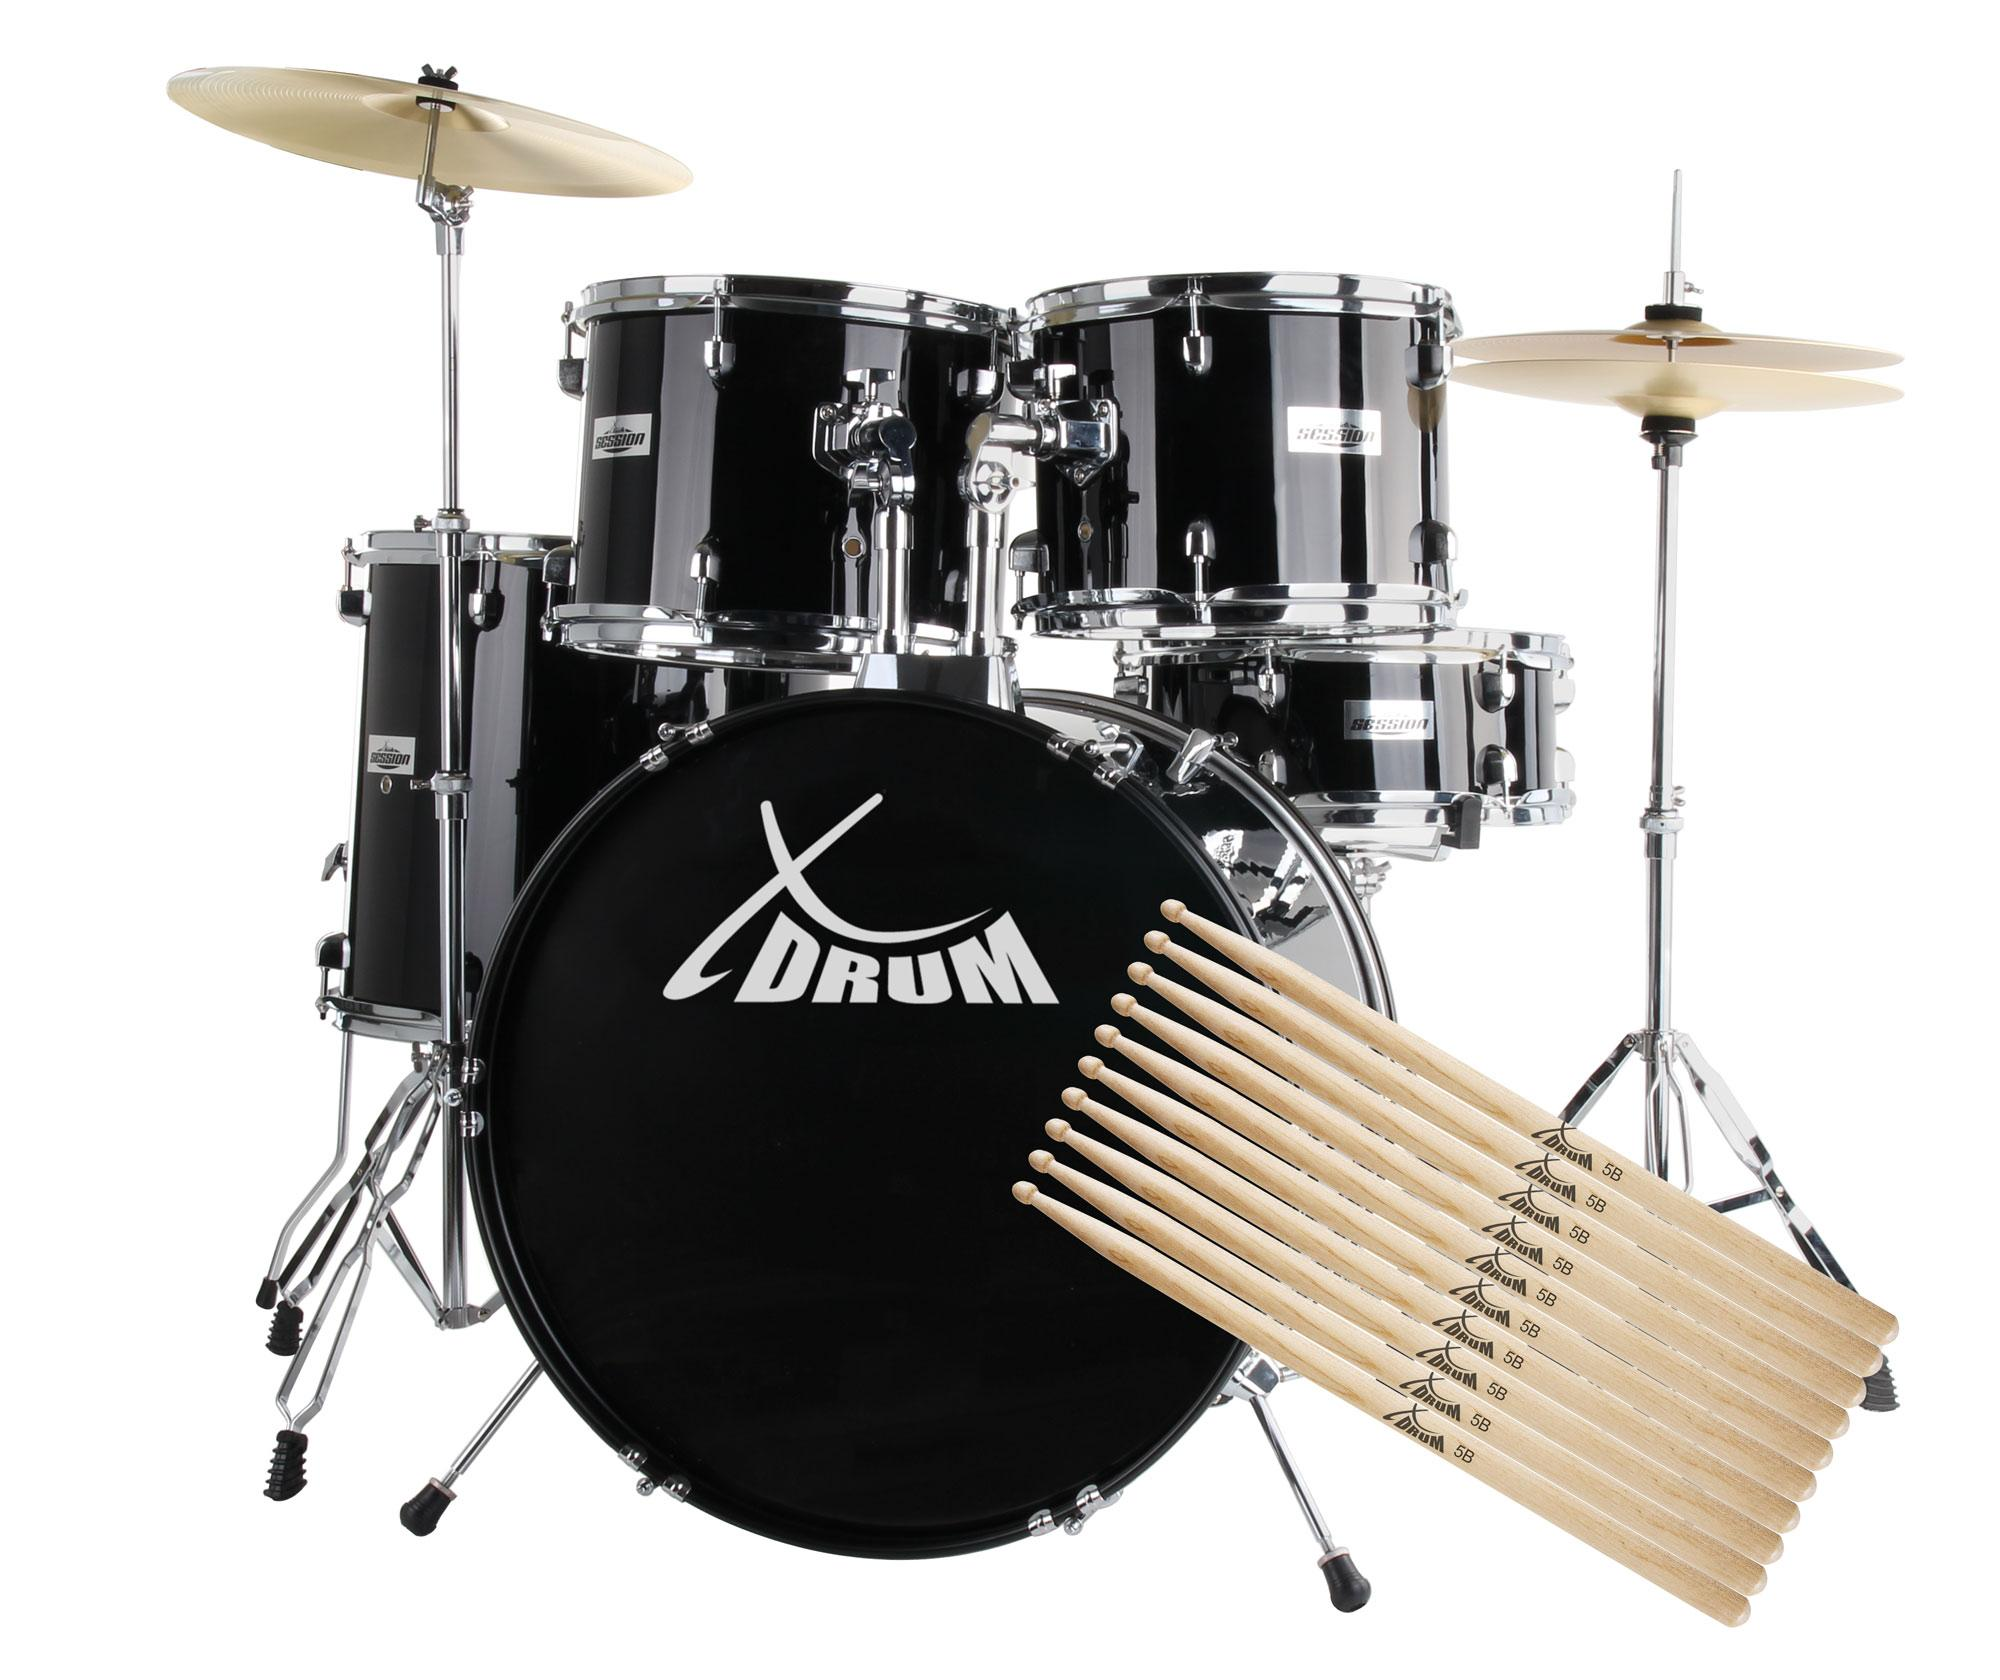 XDrum Drumset Semi N Set 5 Paar Sticks 5A Nylon